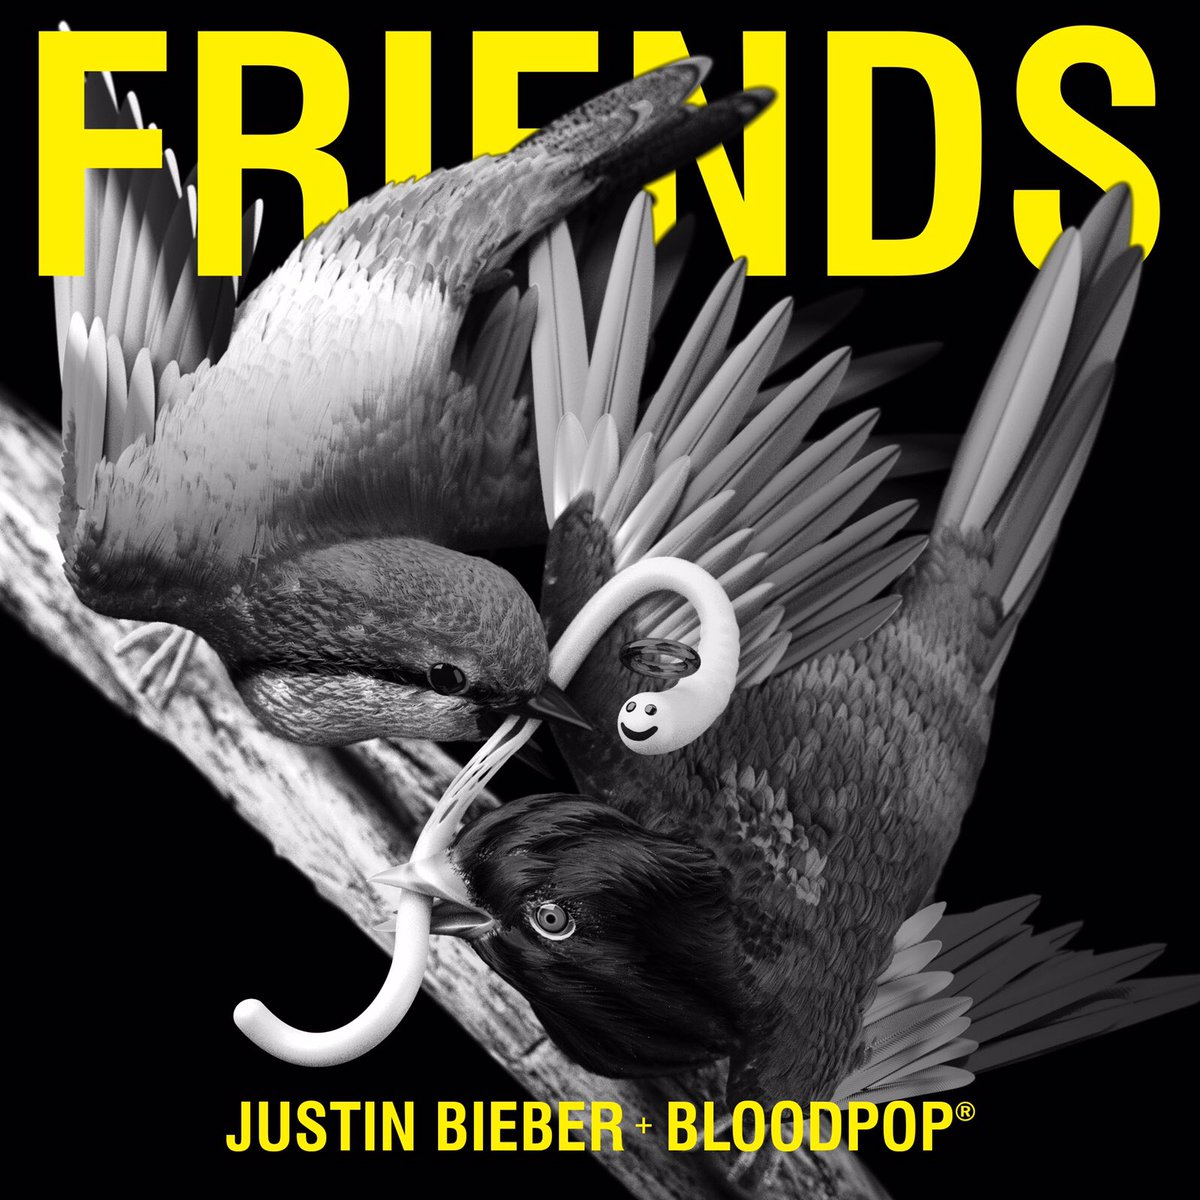 Justin Bieber and BloodPop Collaborate on New Single 'Friends'